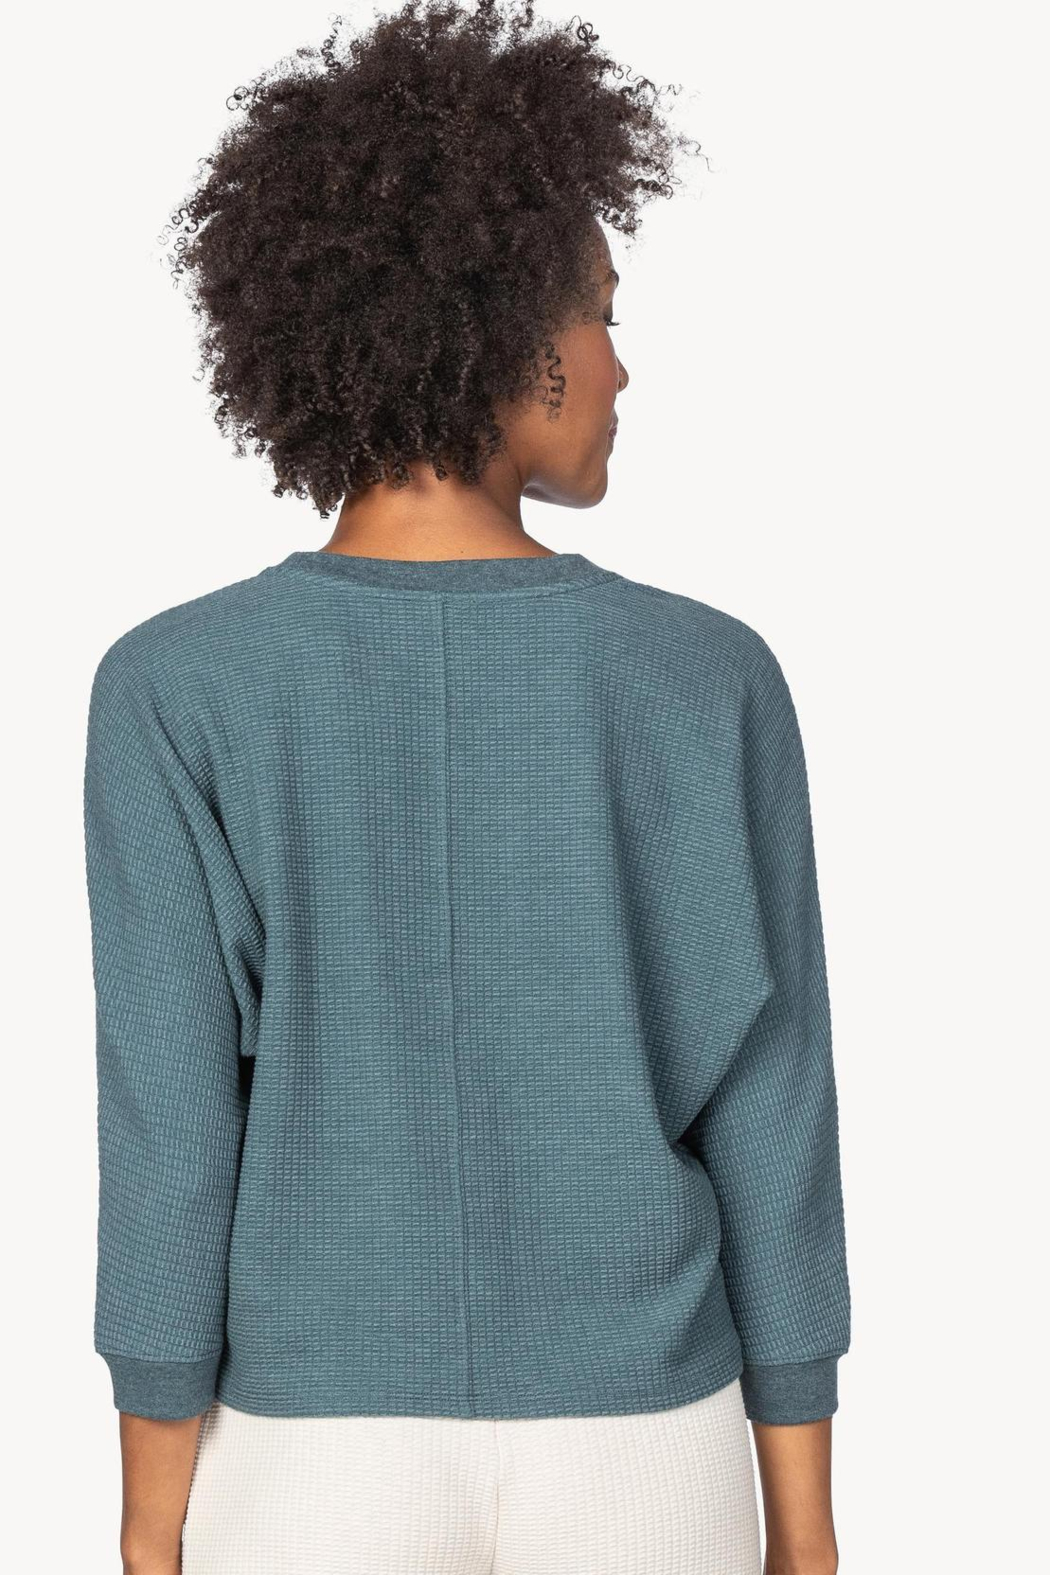 Lilla P PA1393 - Seamed Dolman Top - Side Cropped Image